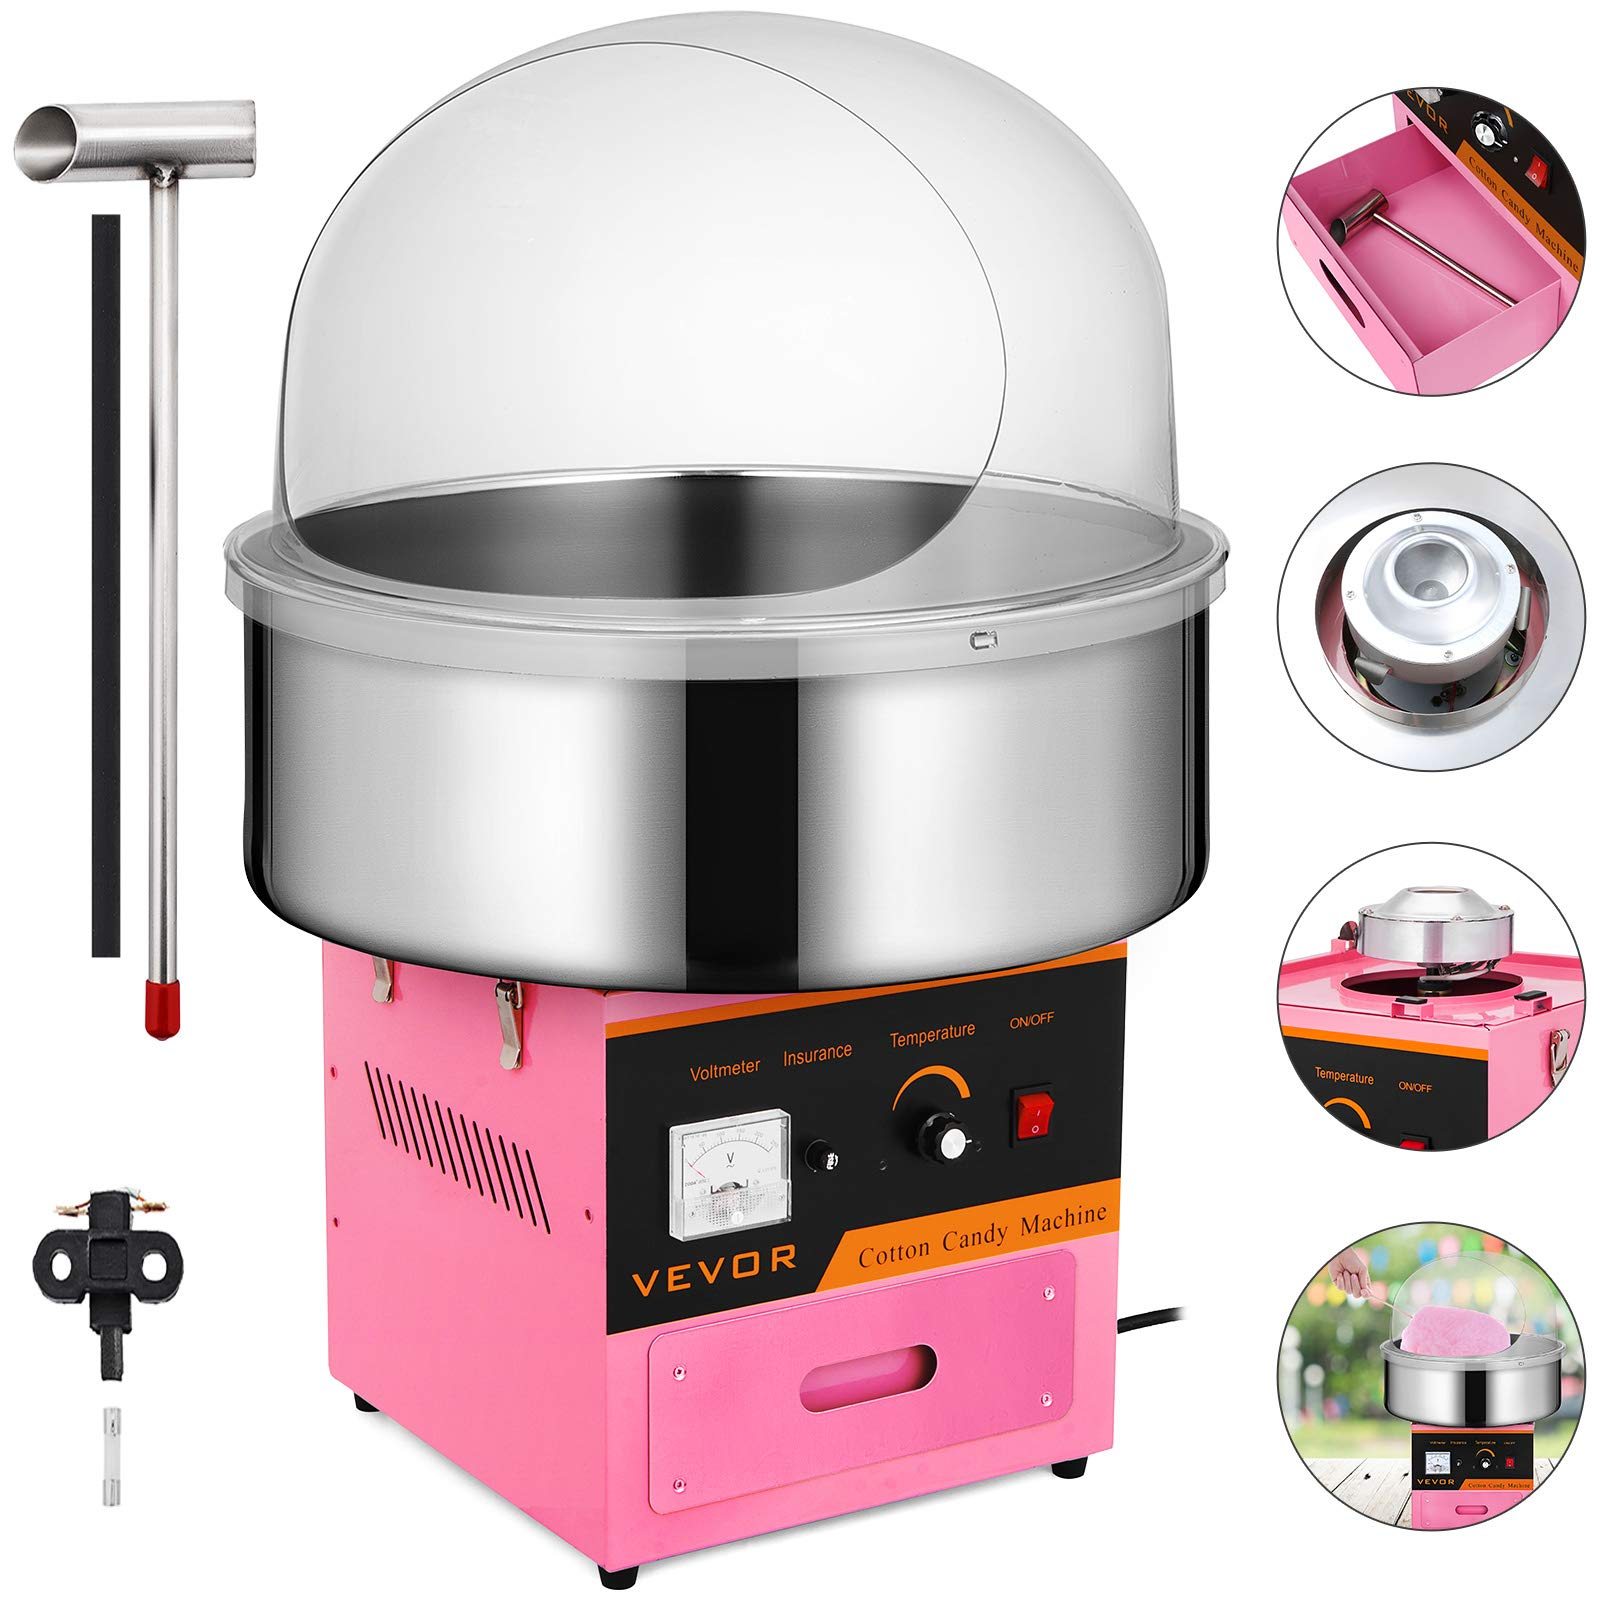 VEVOR Electric Candy Floss Maker 20.5 Inch Cotton Candy Machine 1030W for Various Parties (Cotton Candy Machine with cover)